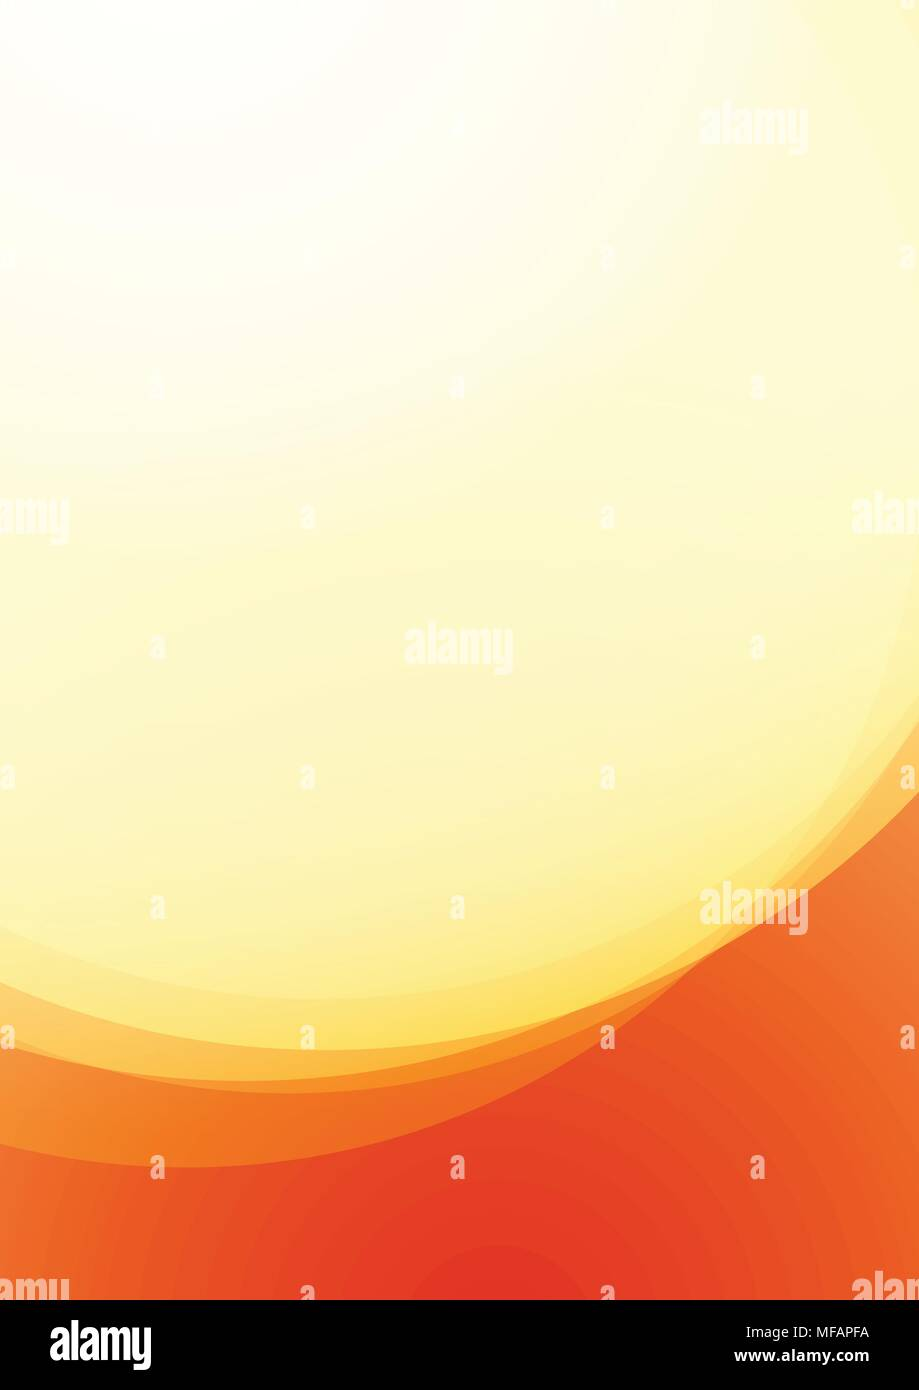 Fire Flame On Background Orange And Red Color Modern Bright Wallpaper Of Energy With Light Area For Copy